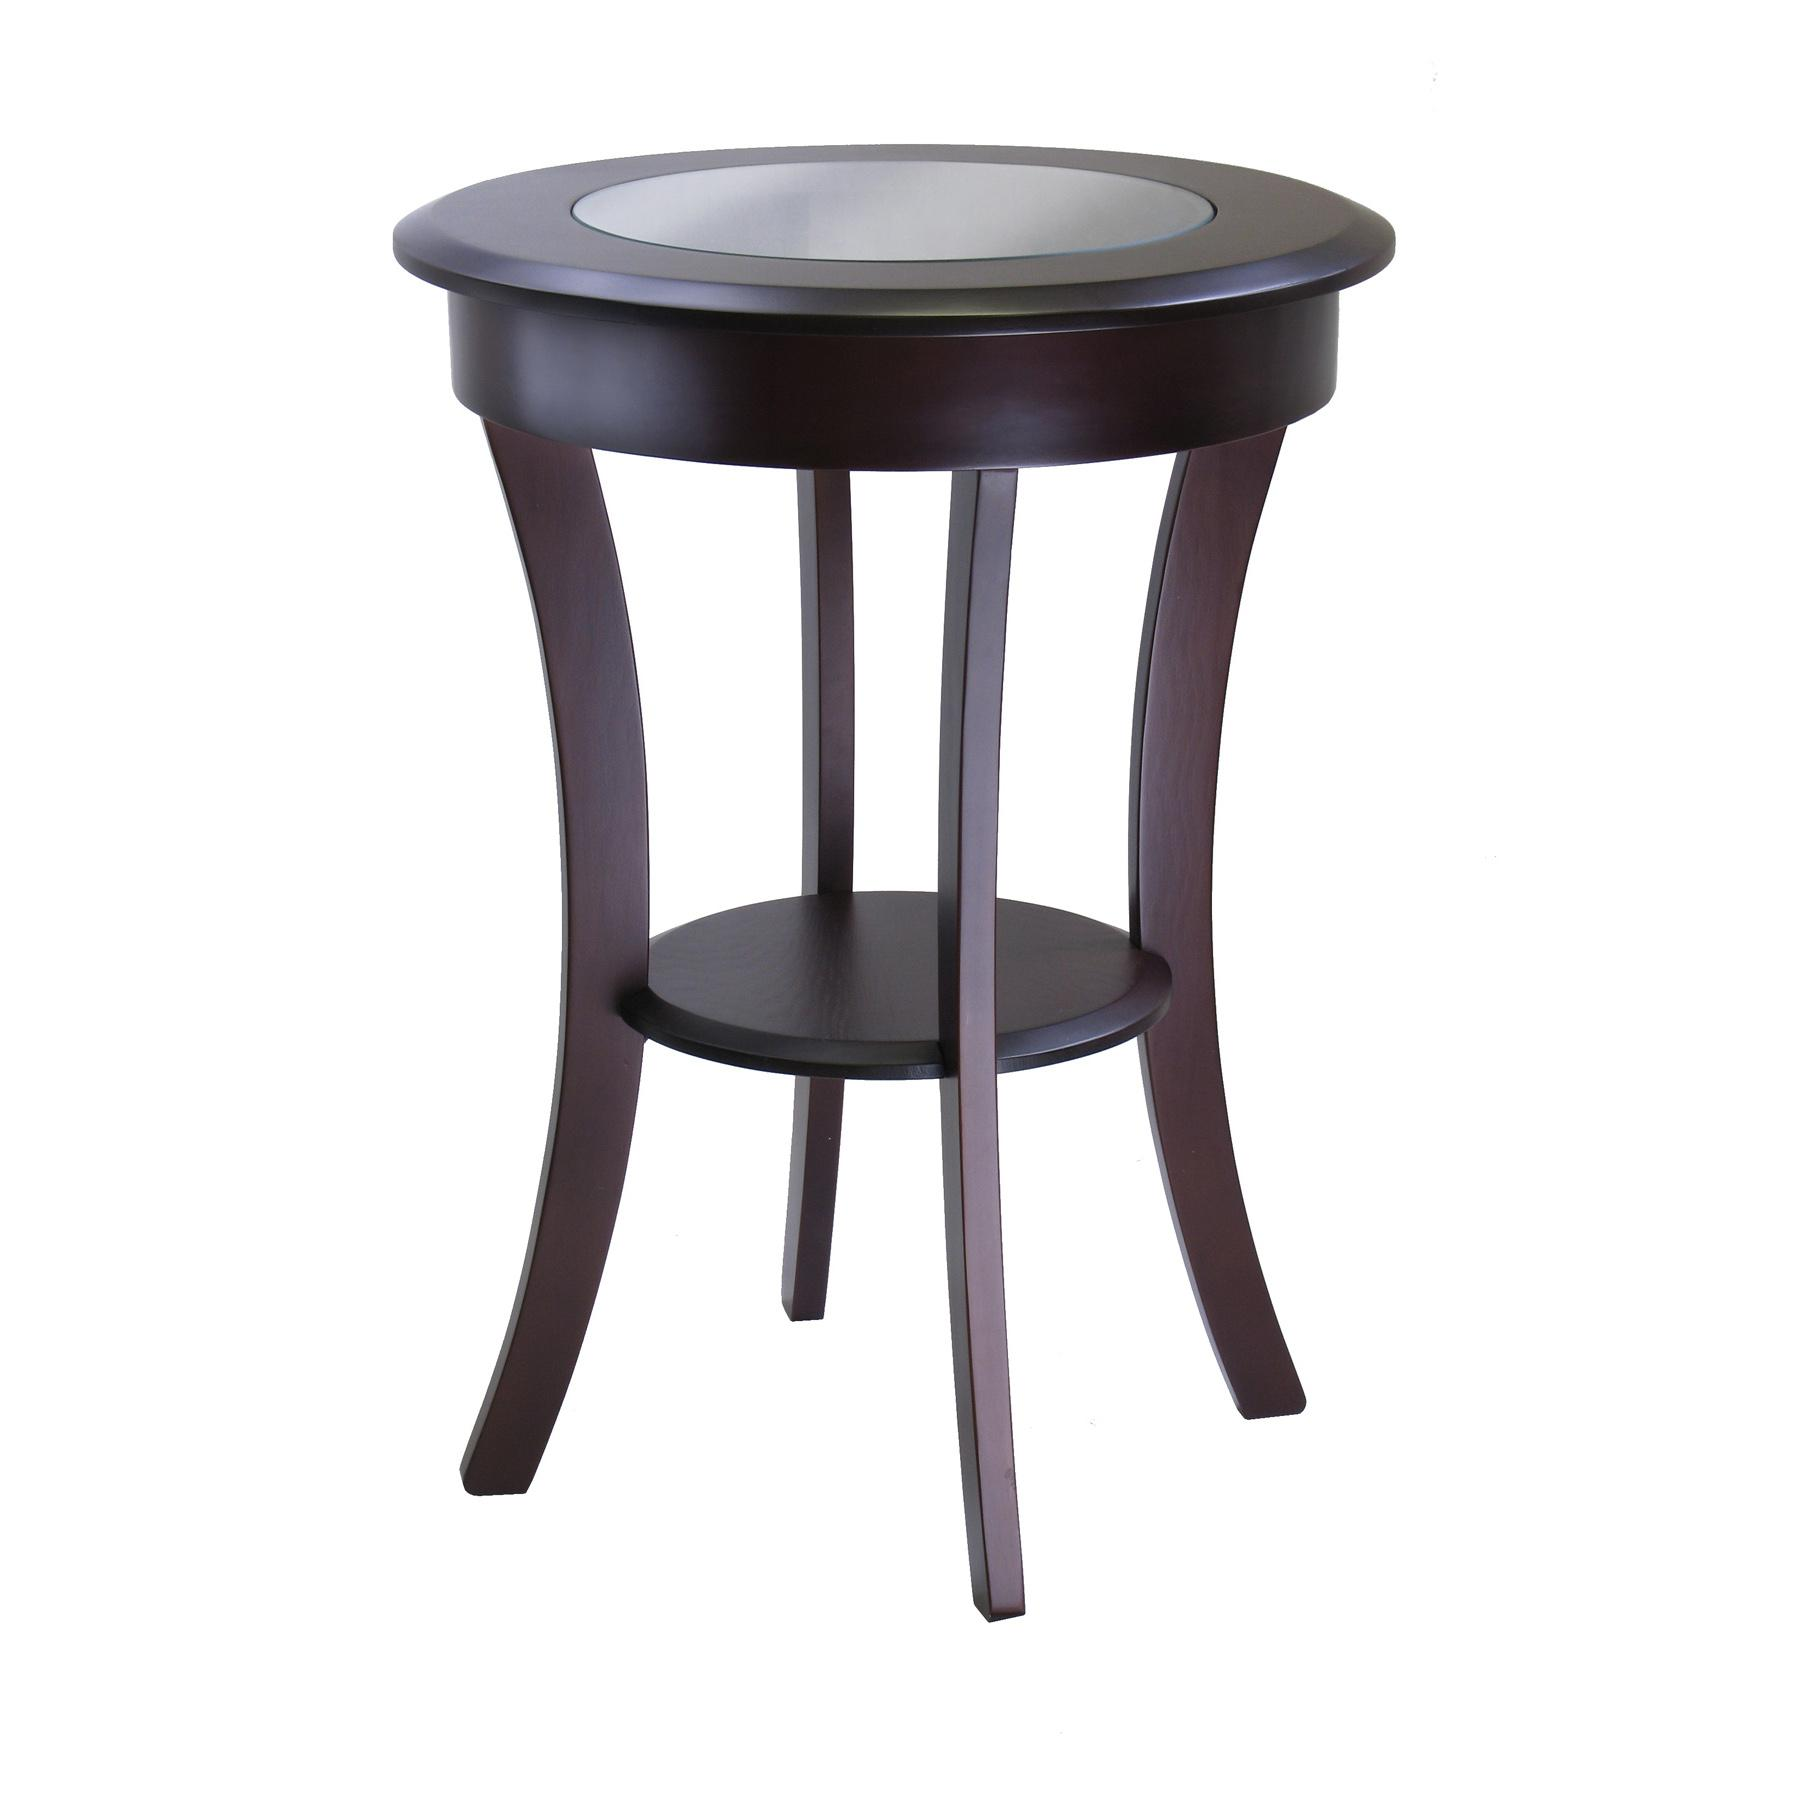 surprising inch tall round accent table decorating patio cover rentals chairs rent tablecloth and tables ideas small for stools covers kitchen cloth full size white antique coffee